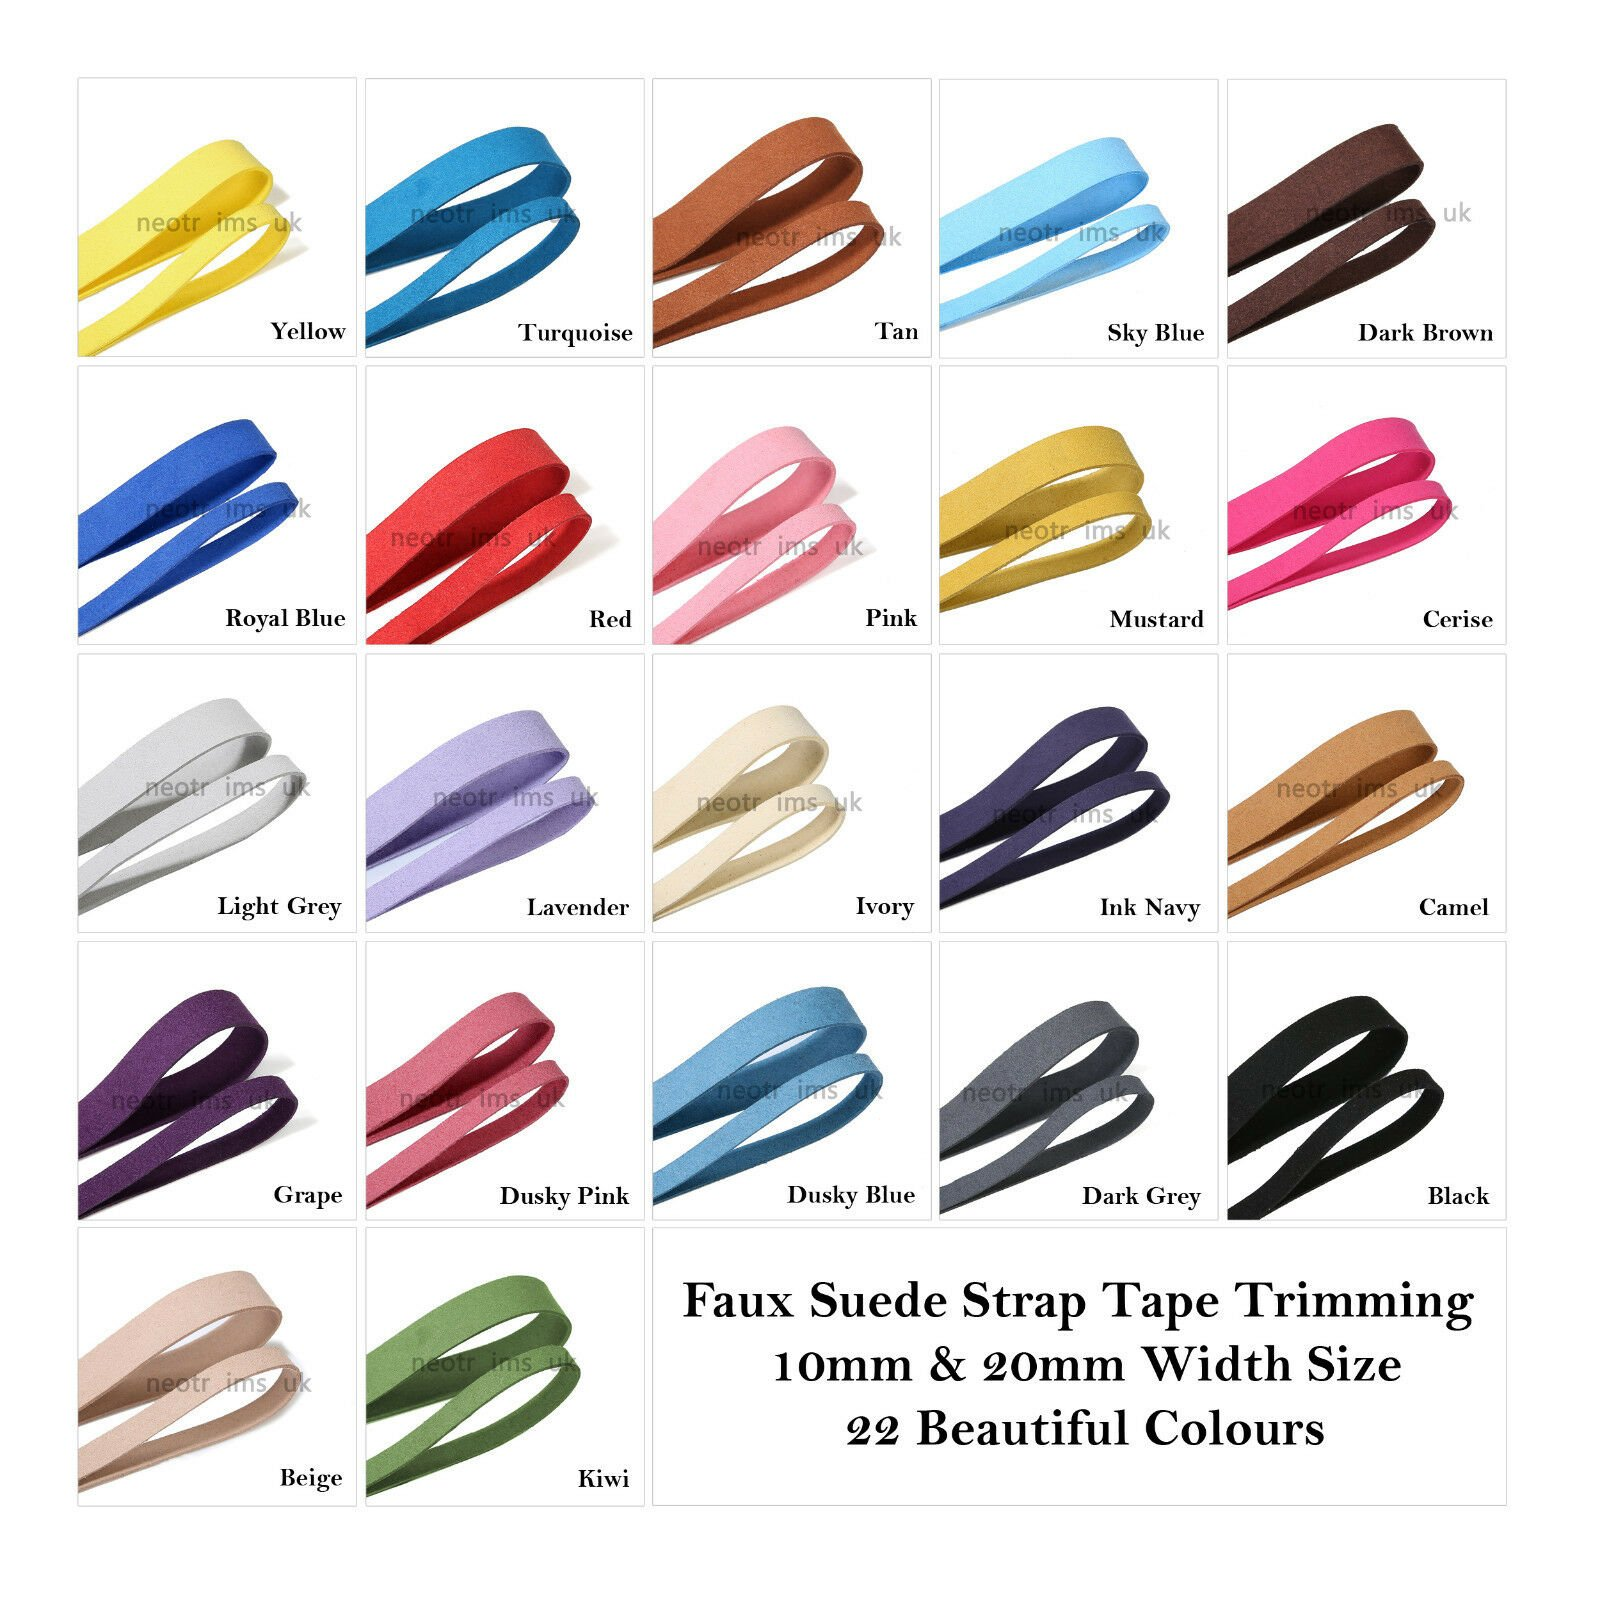 Faux Suede Strap Tape Trimming 10mm & 20mm, 22 Colors Strong Soft Smooth Leather